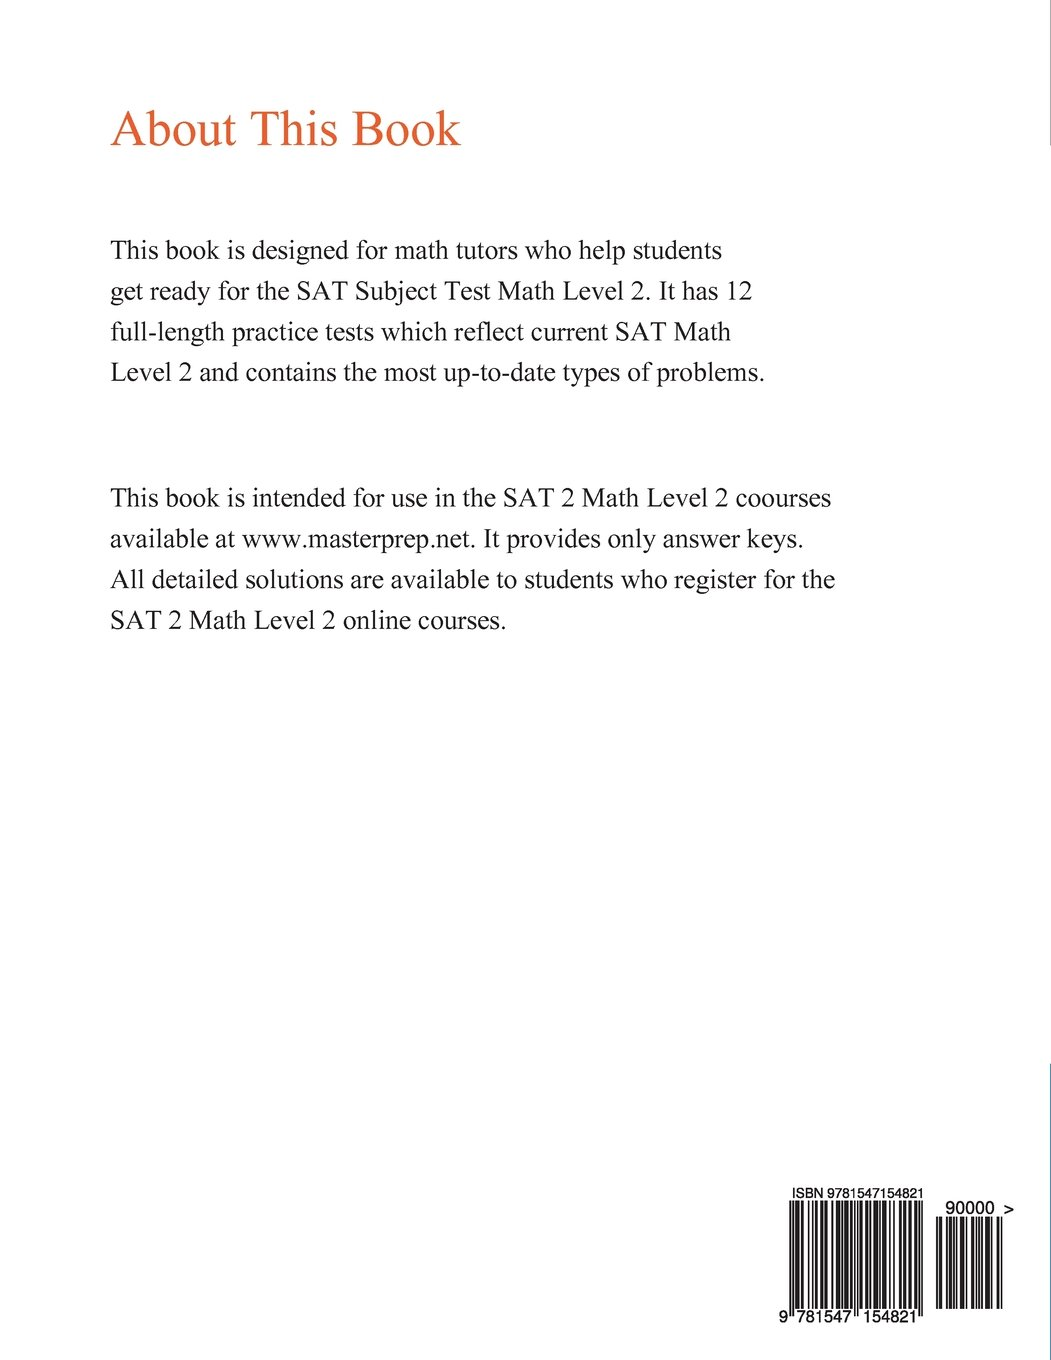 12 Full Length Practice Tests for the SAT Subject Math Level 2 SAT Subject Math Level 2 Practice Tests For Math tutors